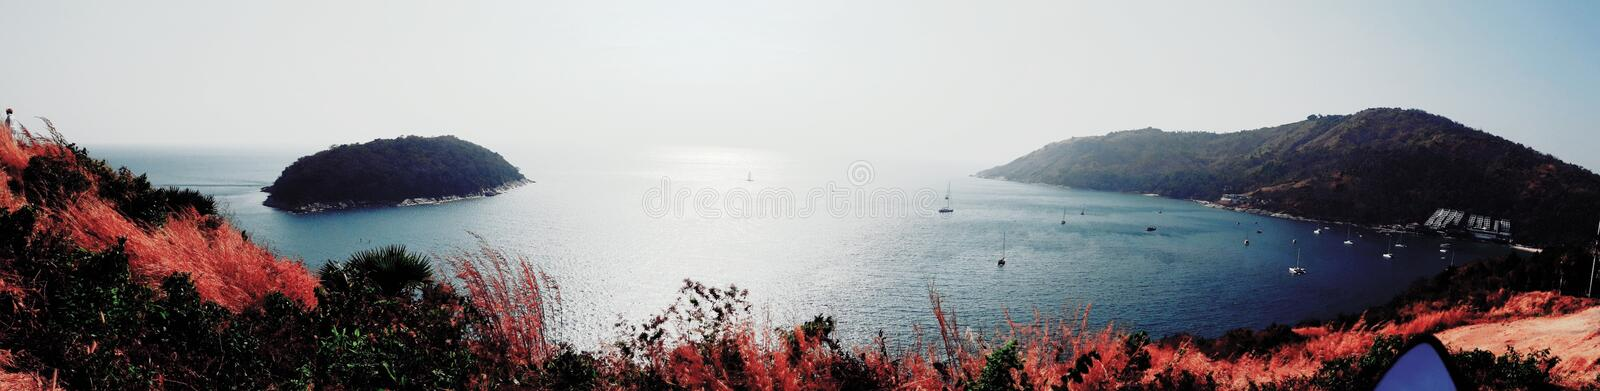 The sea mountains are beautiful nature. royalty free stock image